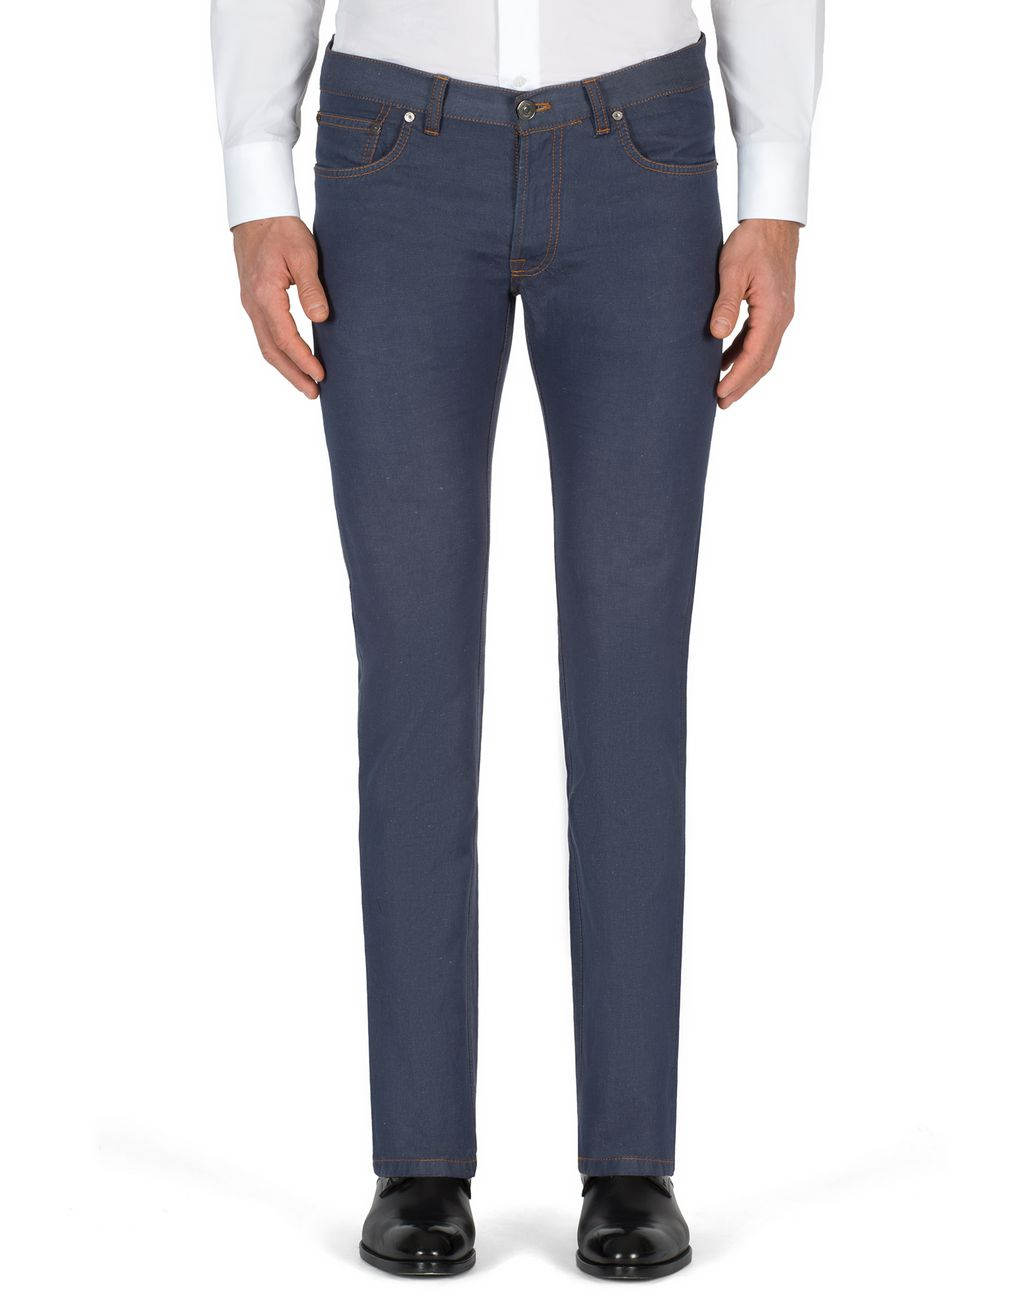 BRIONI Bluette Slim Fit Cotton and Linen Aneto Jeans  Denim Man r